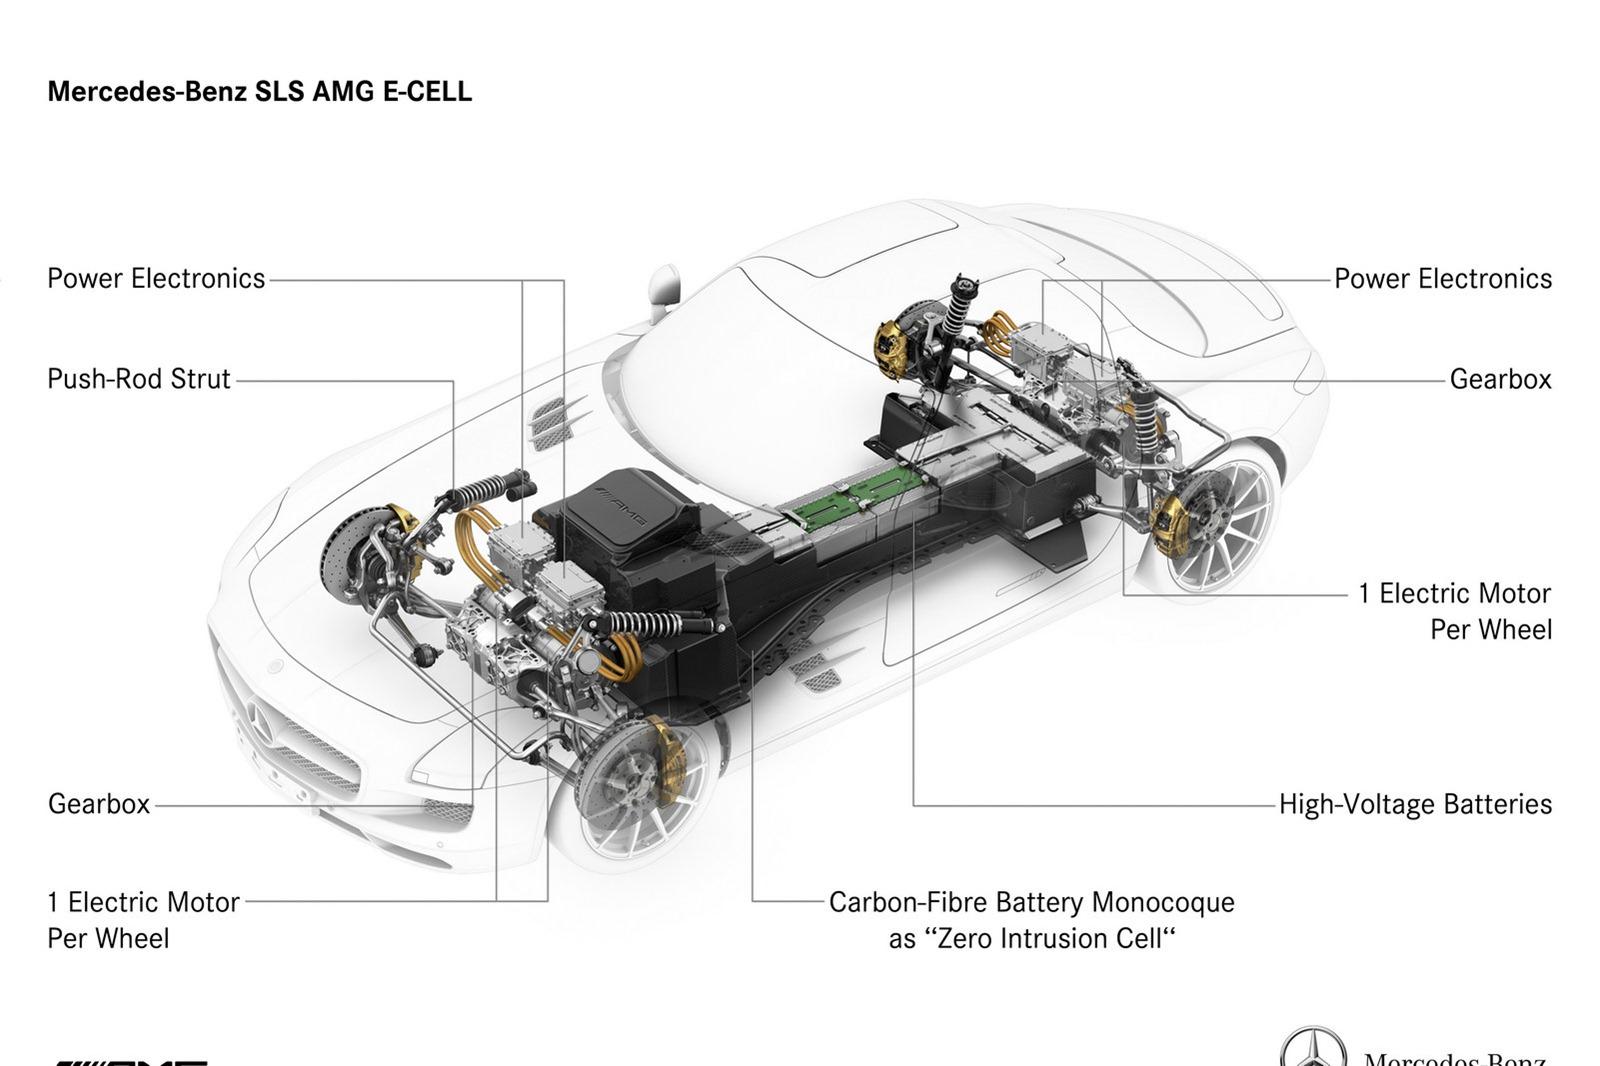 Mercedes Pure Electric Sls Amg E Cell Latest News